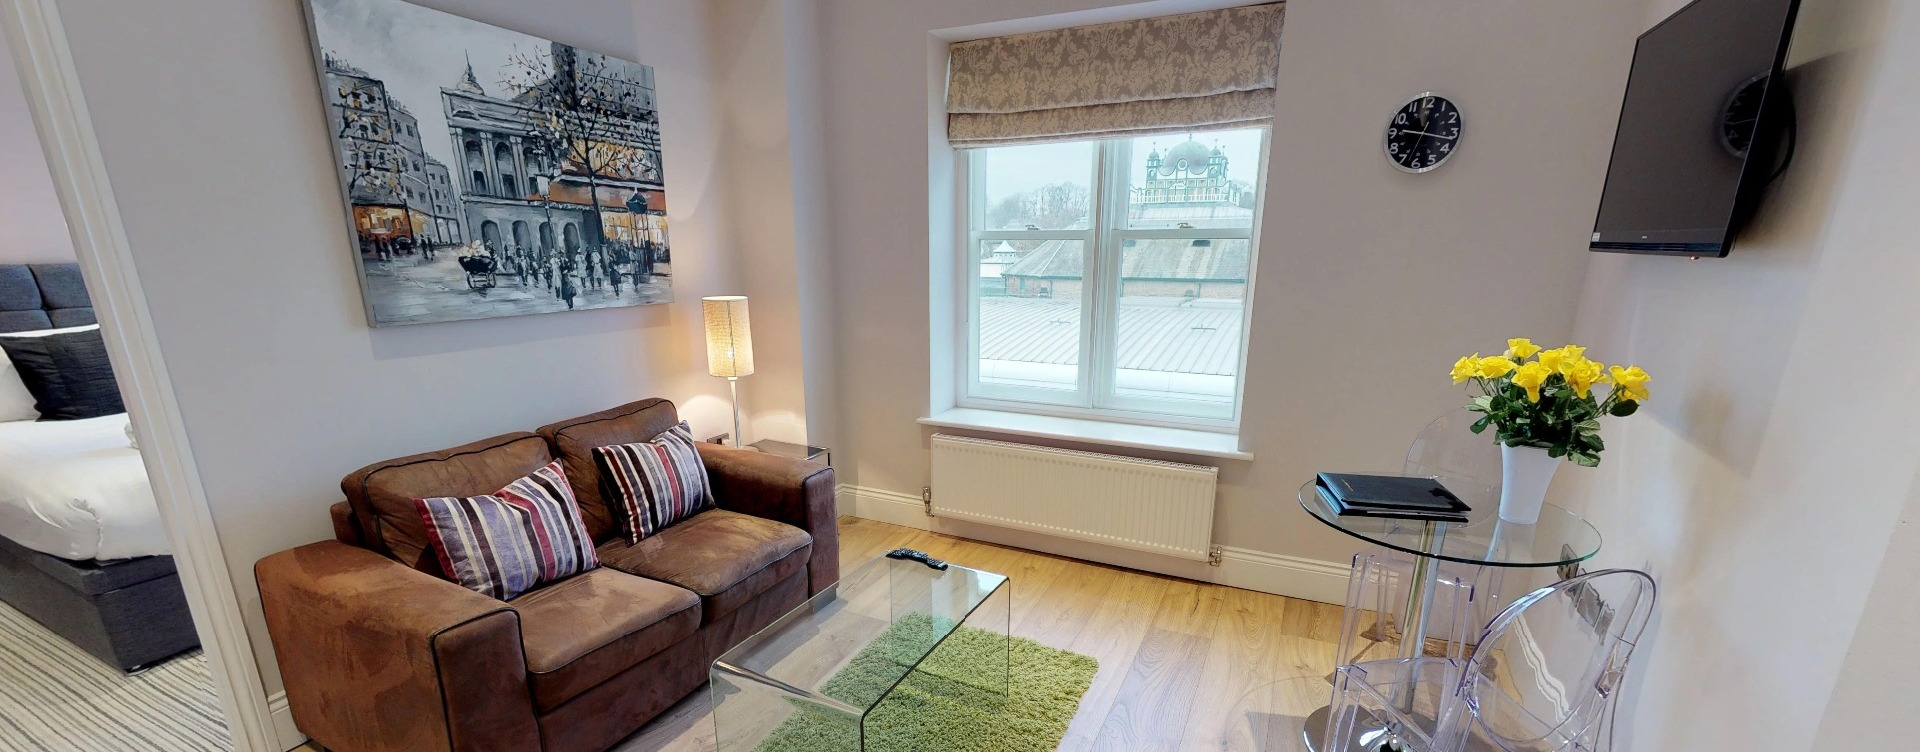 Cheap hotels in Harrogate or serviced apartments TO RENT